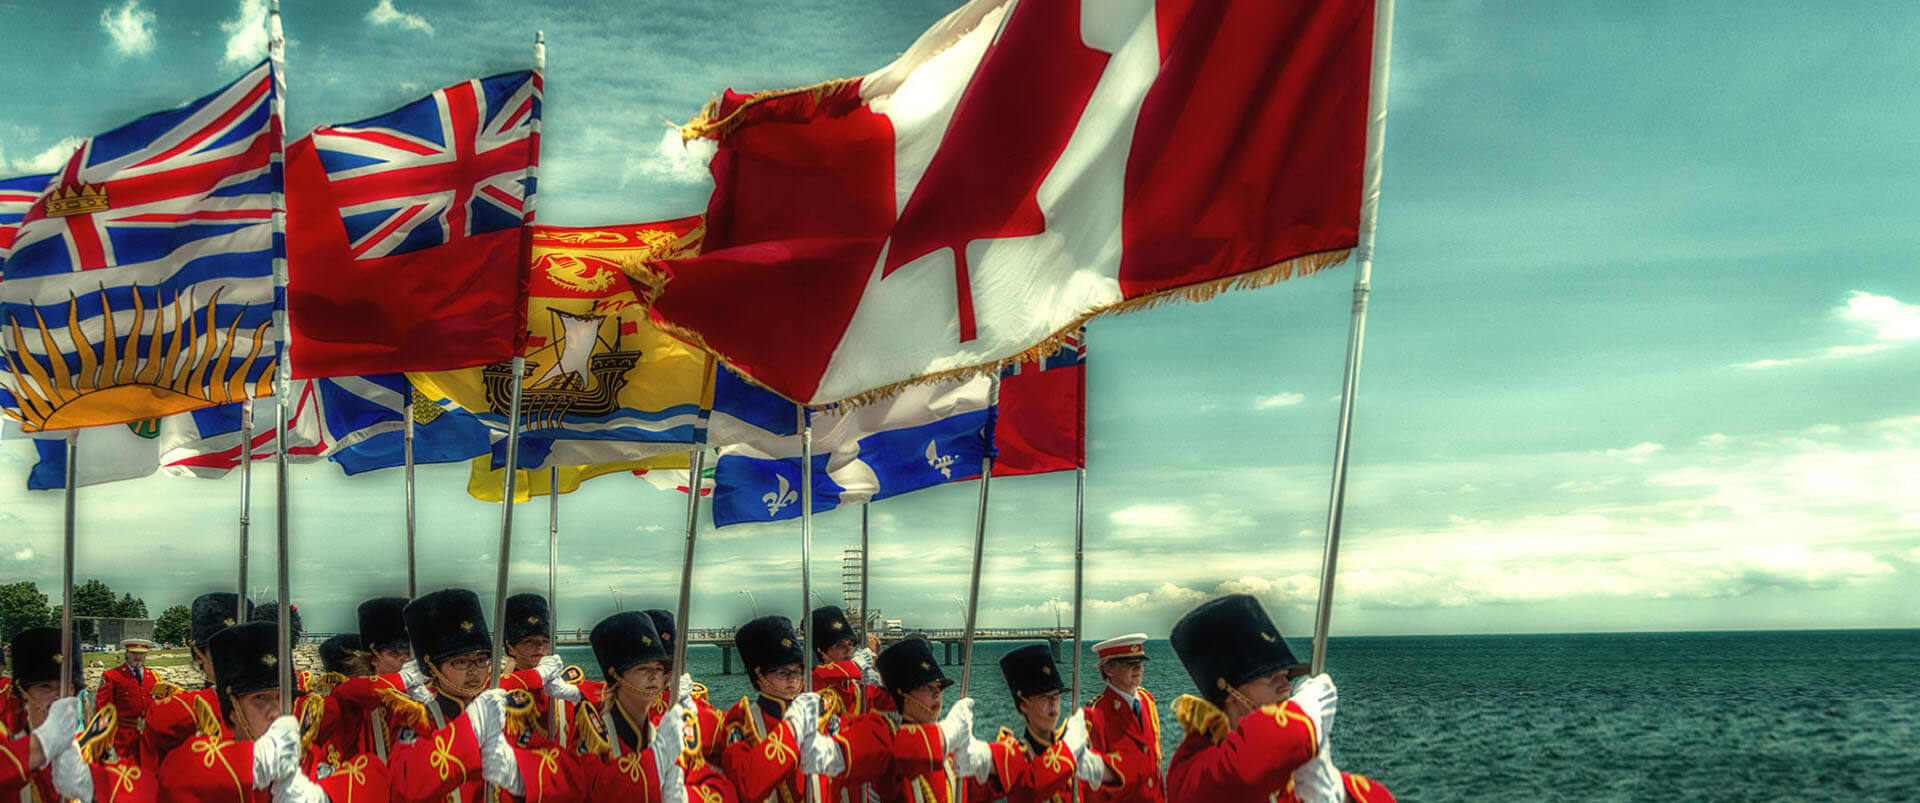 Banner-02-2_Canadian_army_with_a_flag